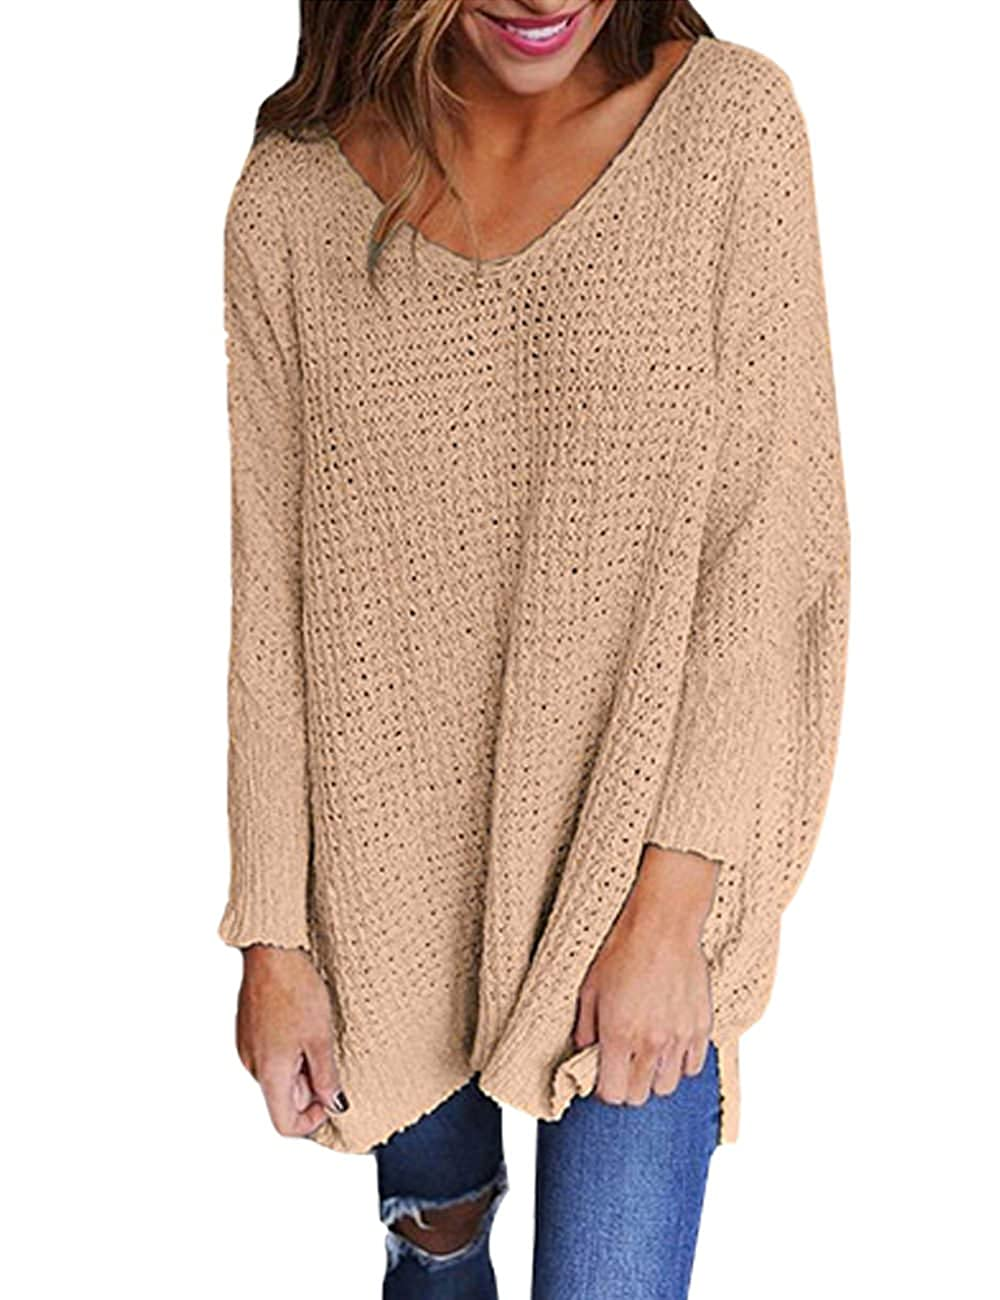 Exlura Women\u0027s Oversized Knitted Sweater Long Sleeve V,Neck Loose Top  Jumper Pullovers